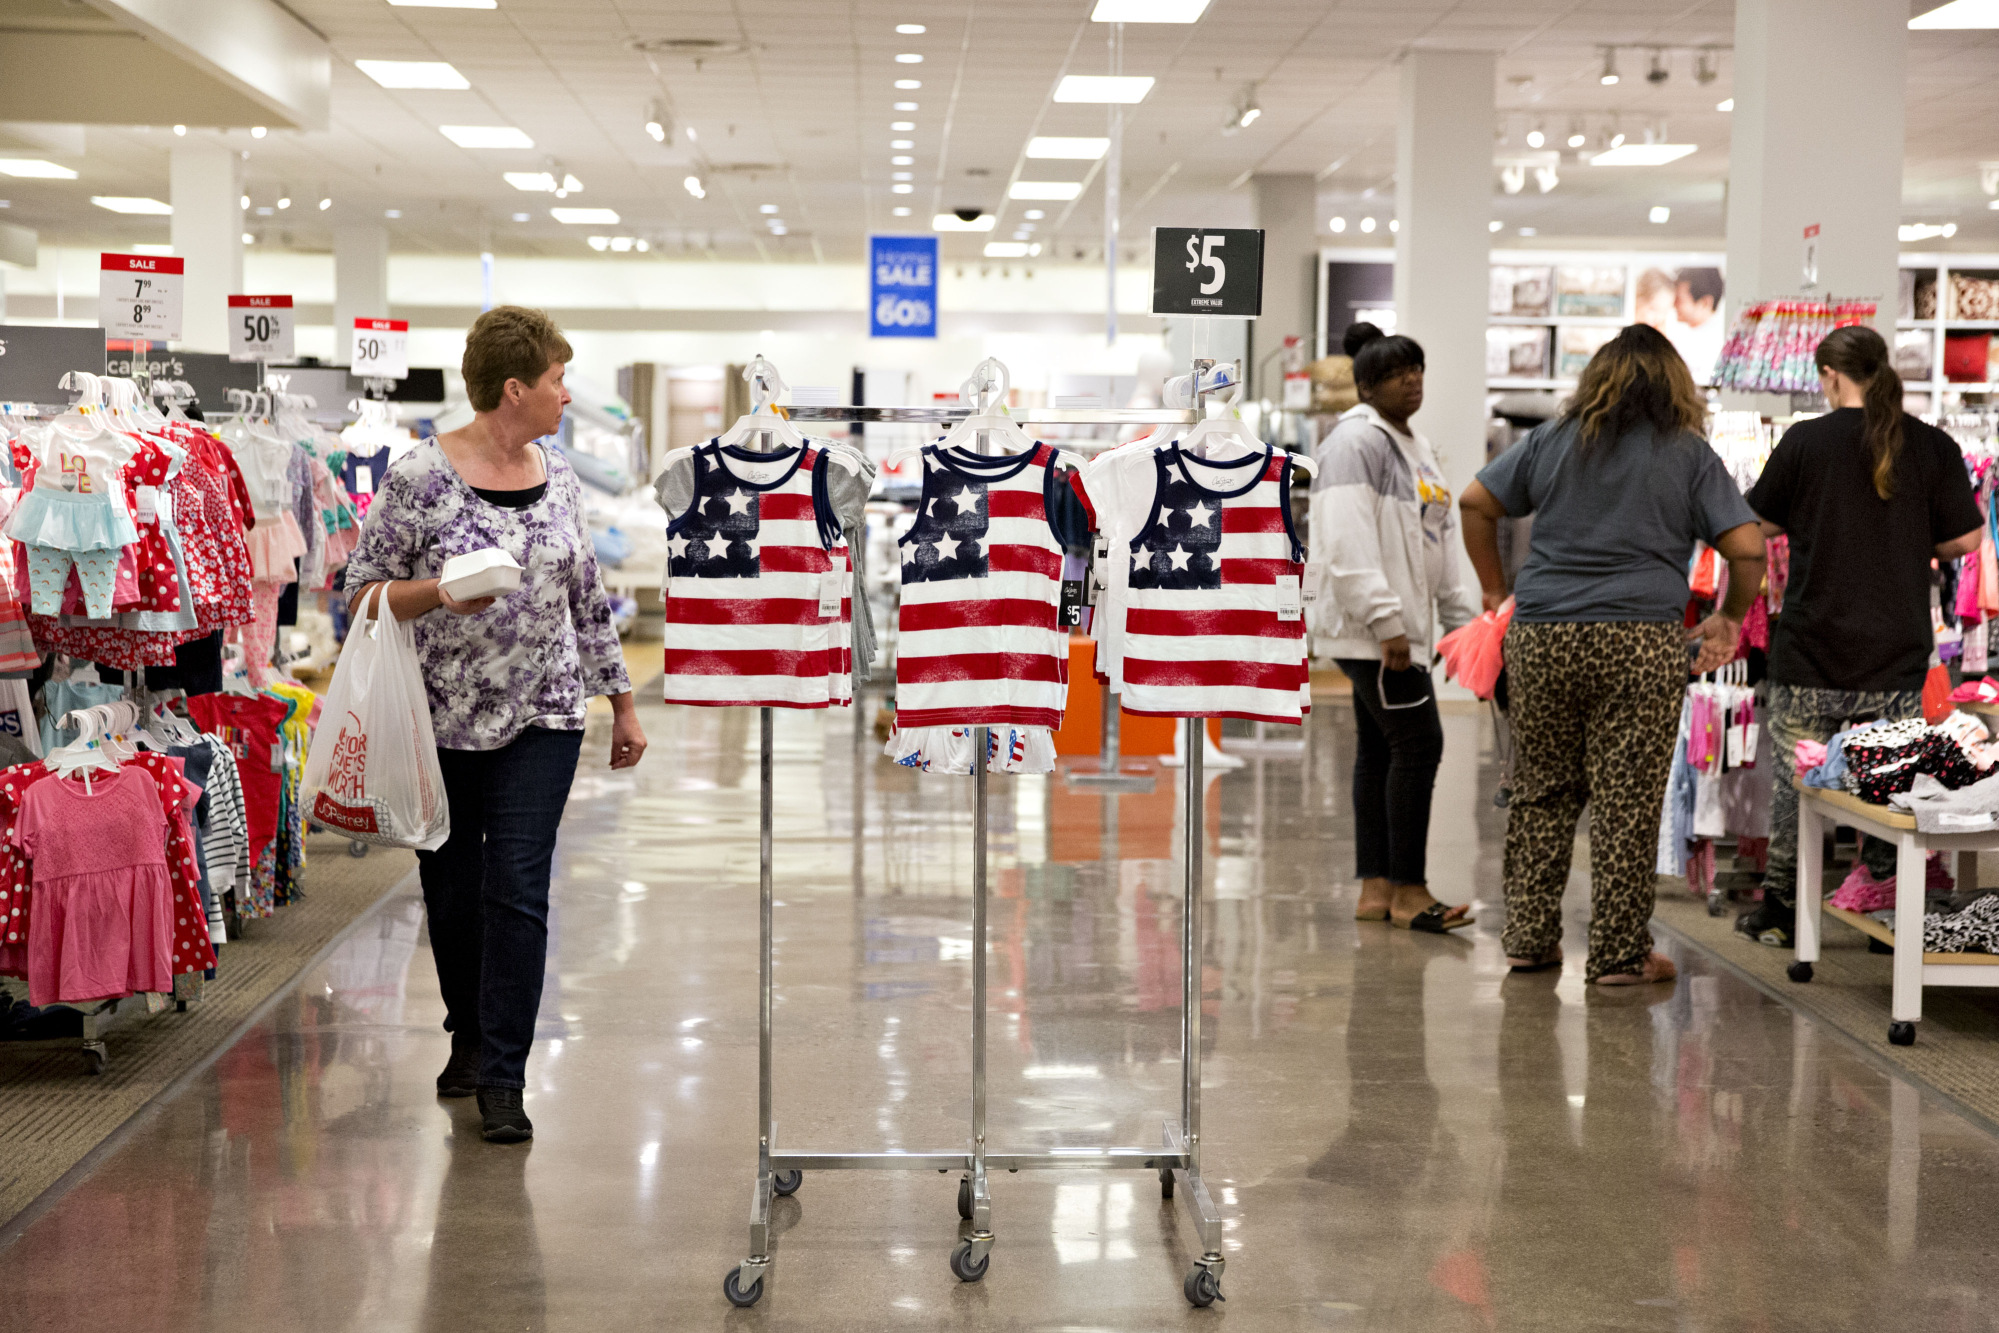 American flag themed clothing hangs on a rack inside a J.C. Penney Co. store in Peoria, Illinois, U.S., on Saturday, May 12, 2018.